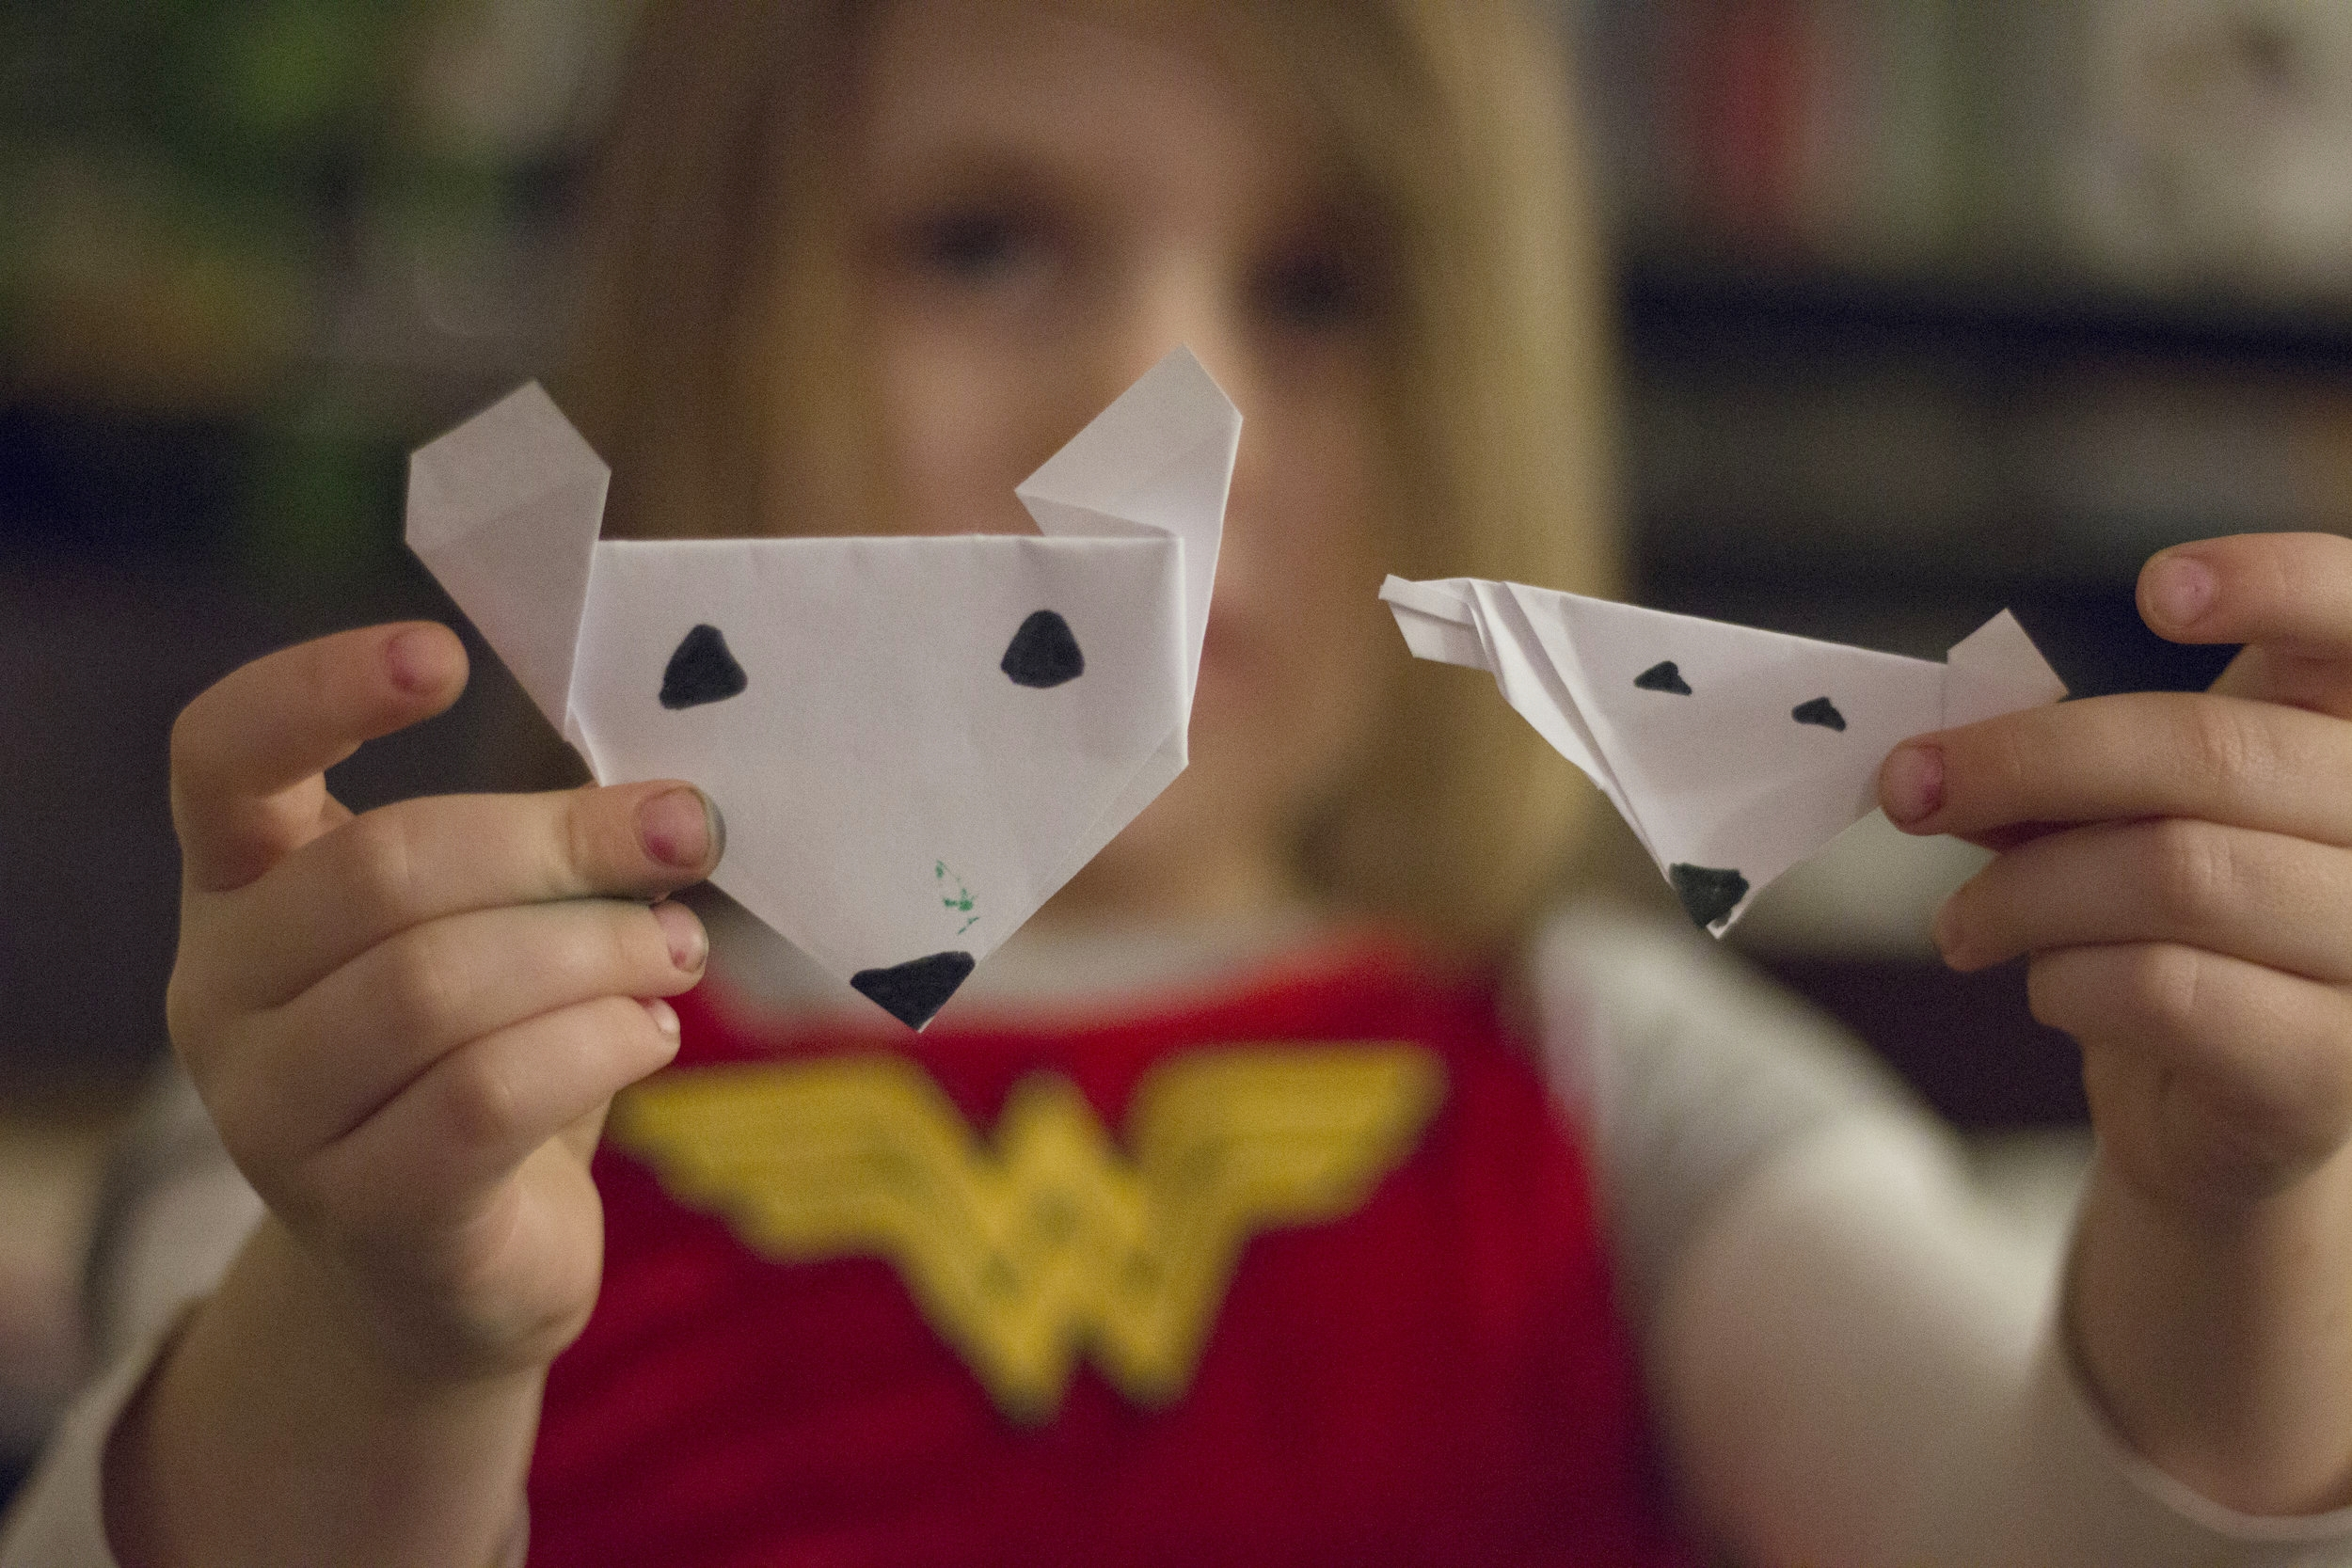 Shiloh holds up two paper foxes she made.